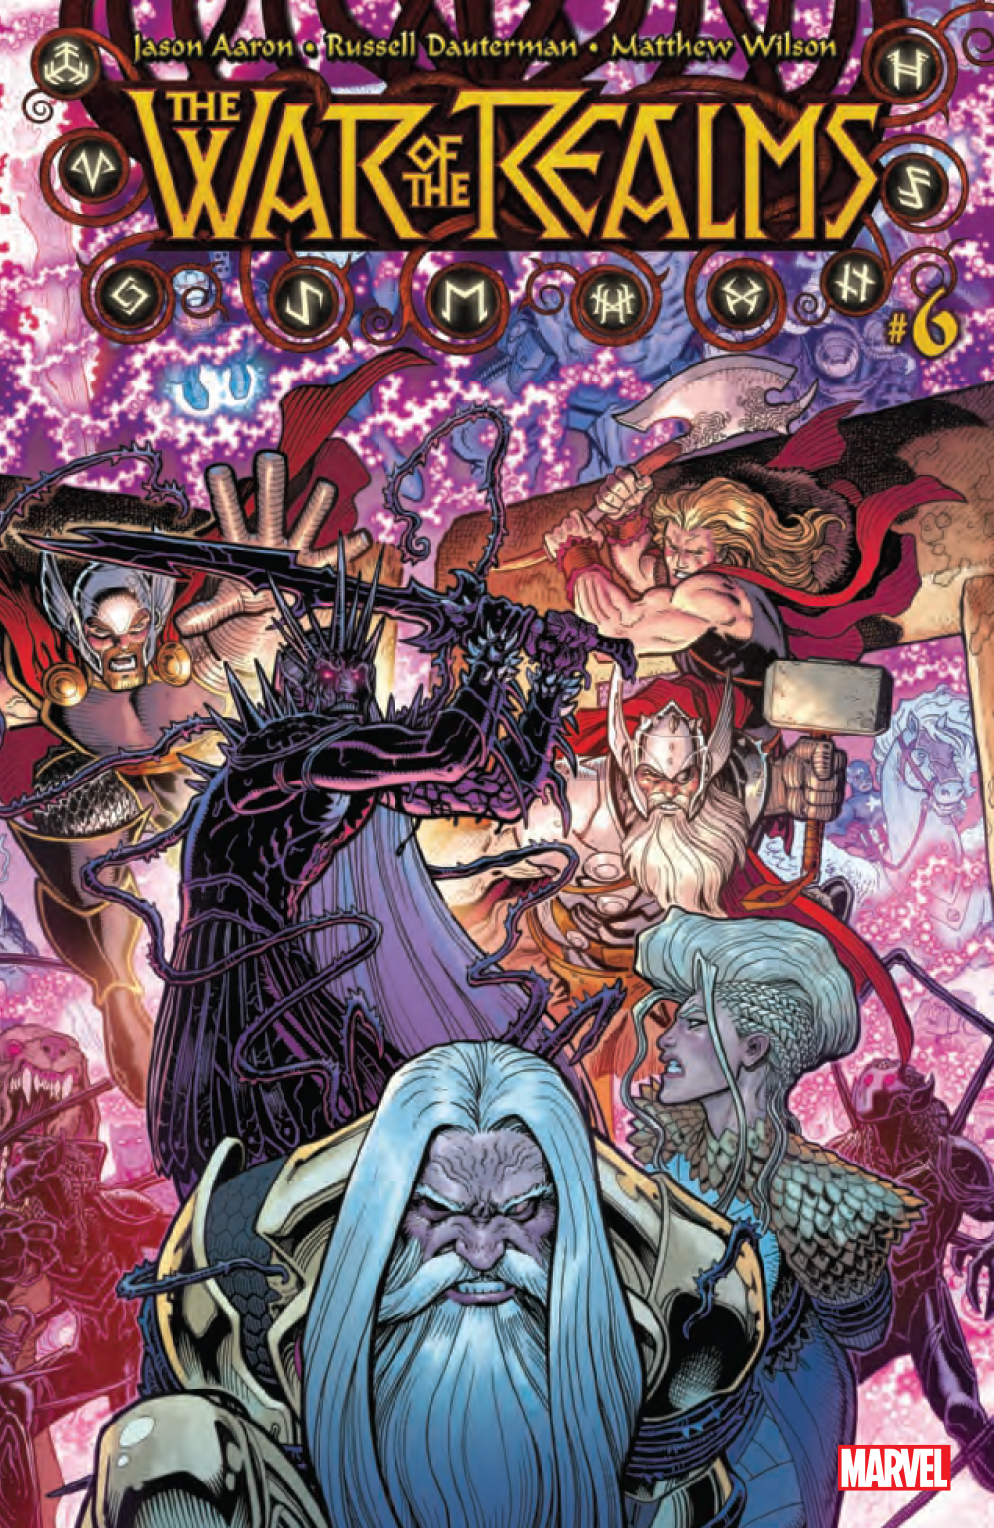 War of the Realms #6  is out now.